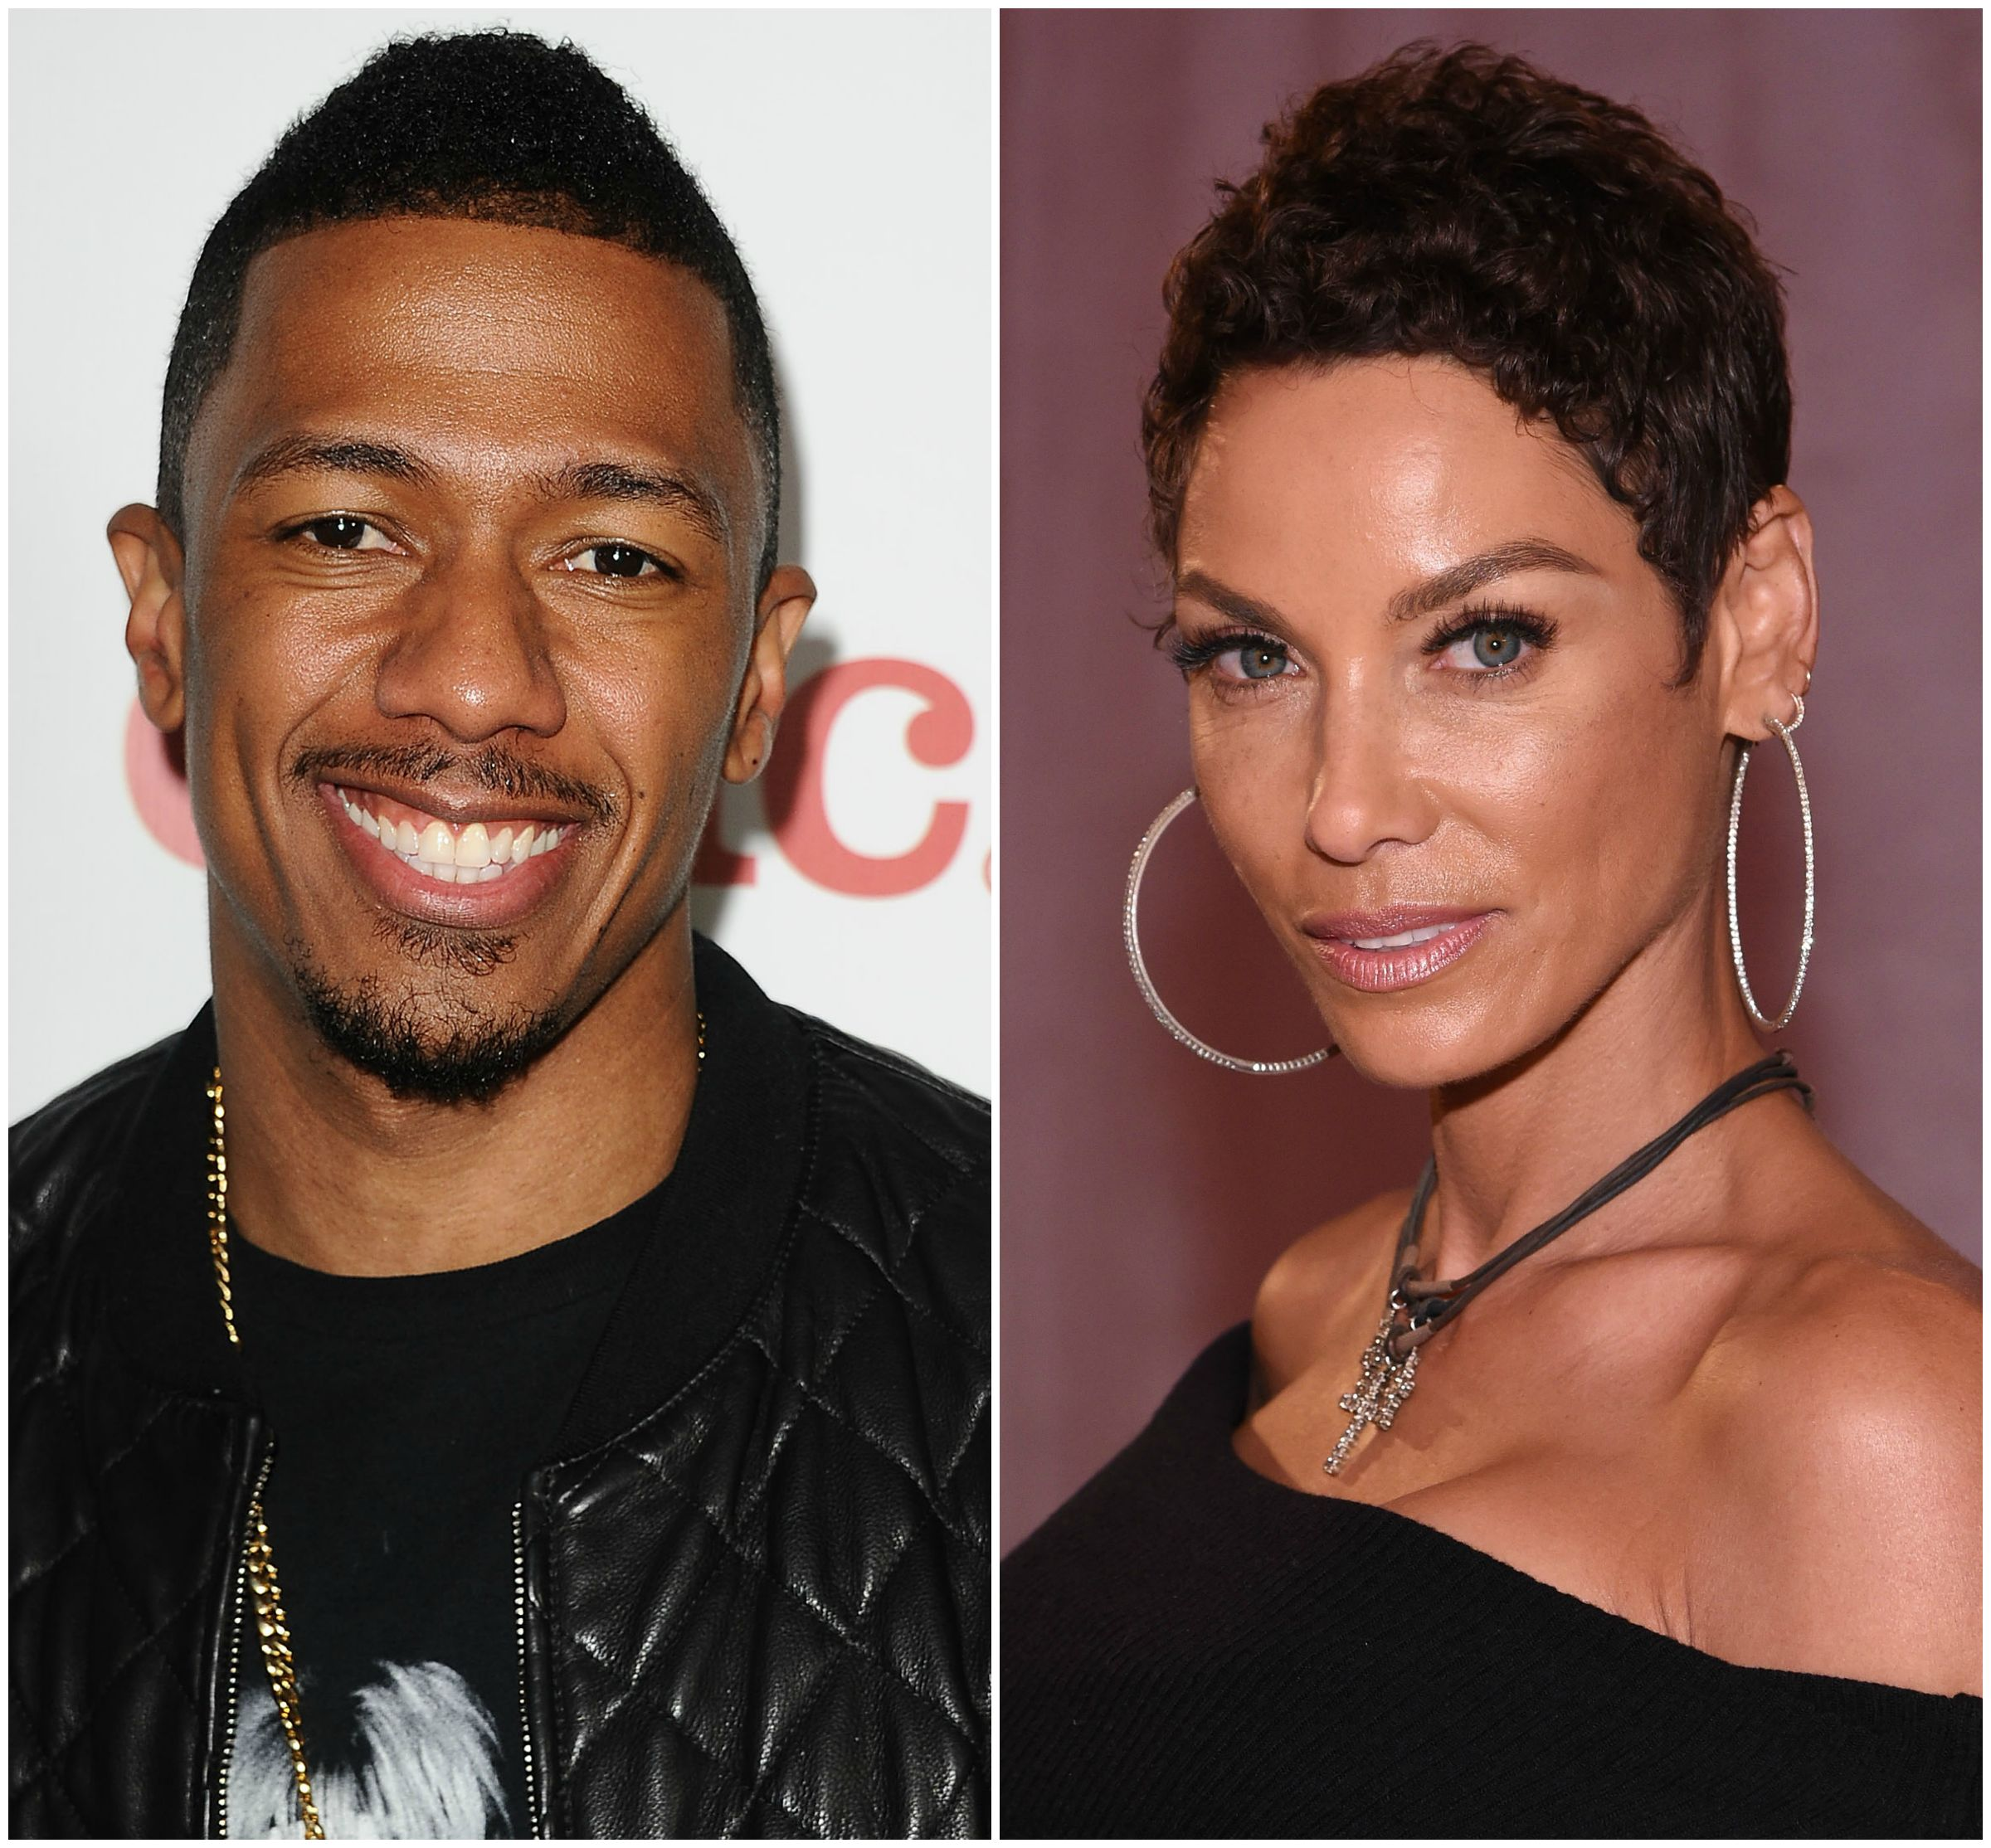 Nick Cannon Spent Valentine's Day With Nicole Murphy After Mariah Carey Split